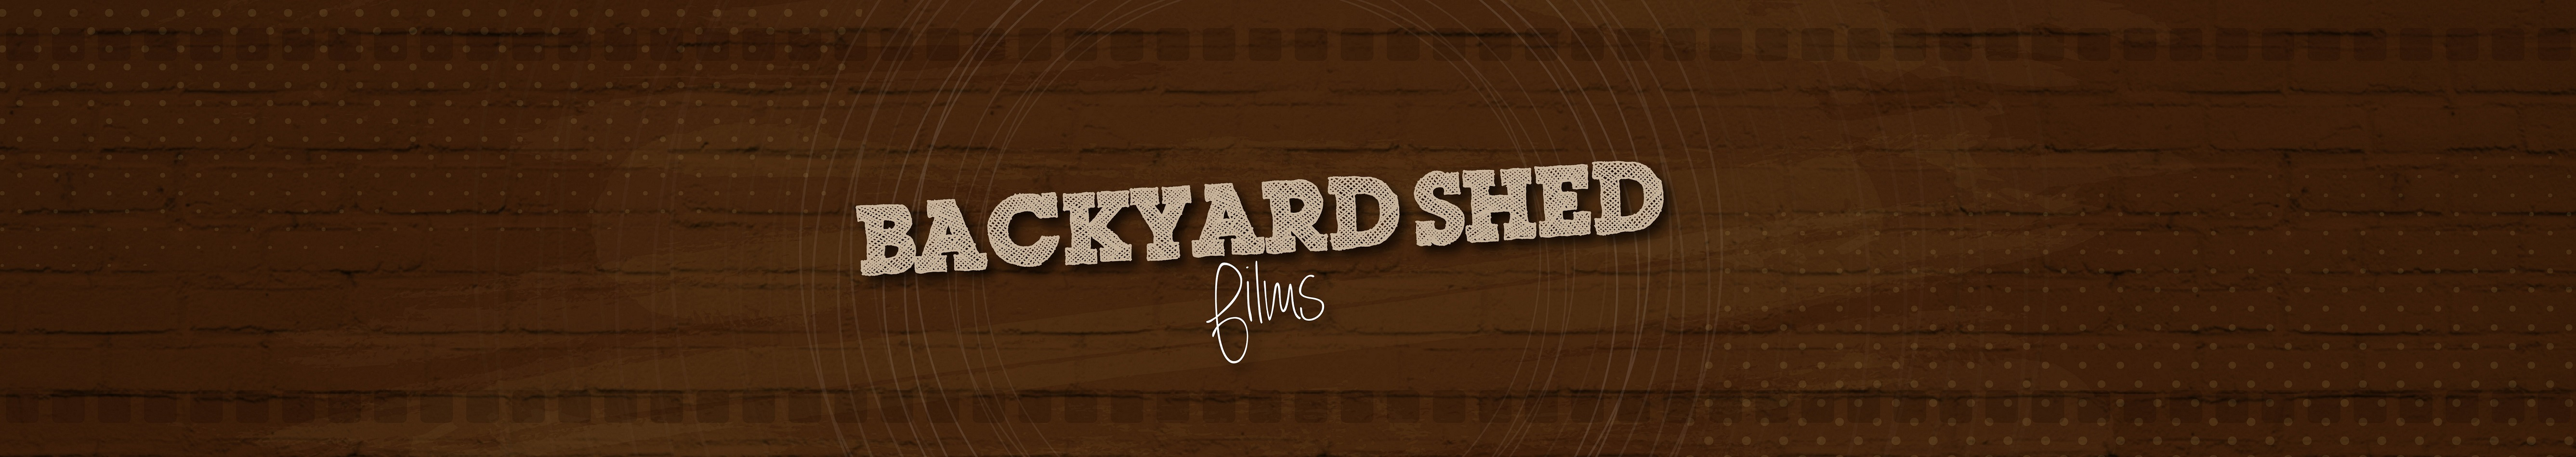 Home Page 5 – Boxed Slider – FullWidth Content | Backyard Shed Films